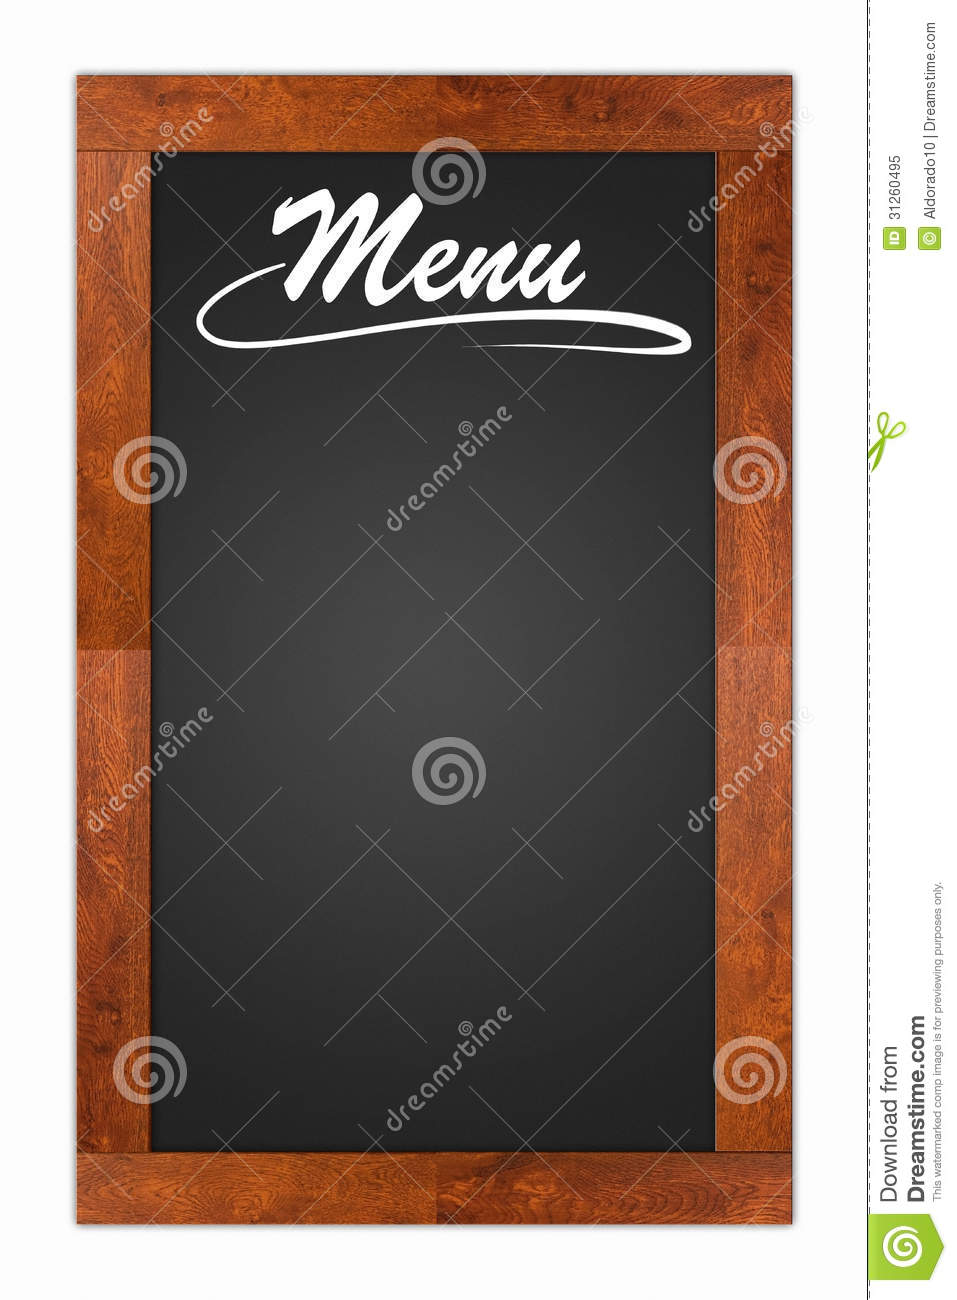 Bill Of Fare, Menu Card Royalty Free Stock Photo - Image ...